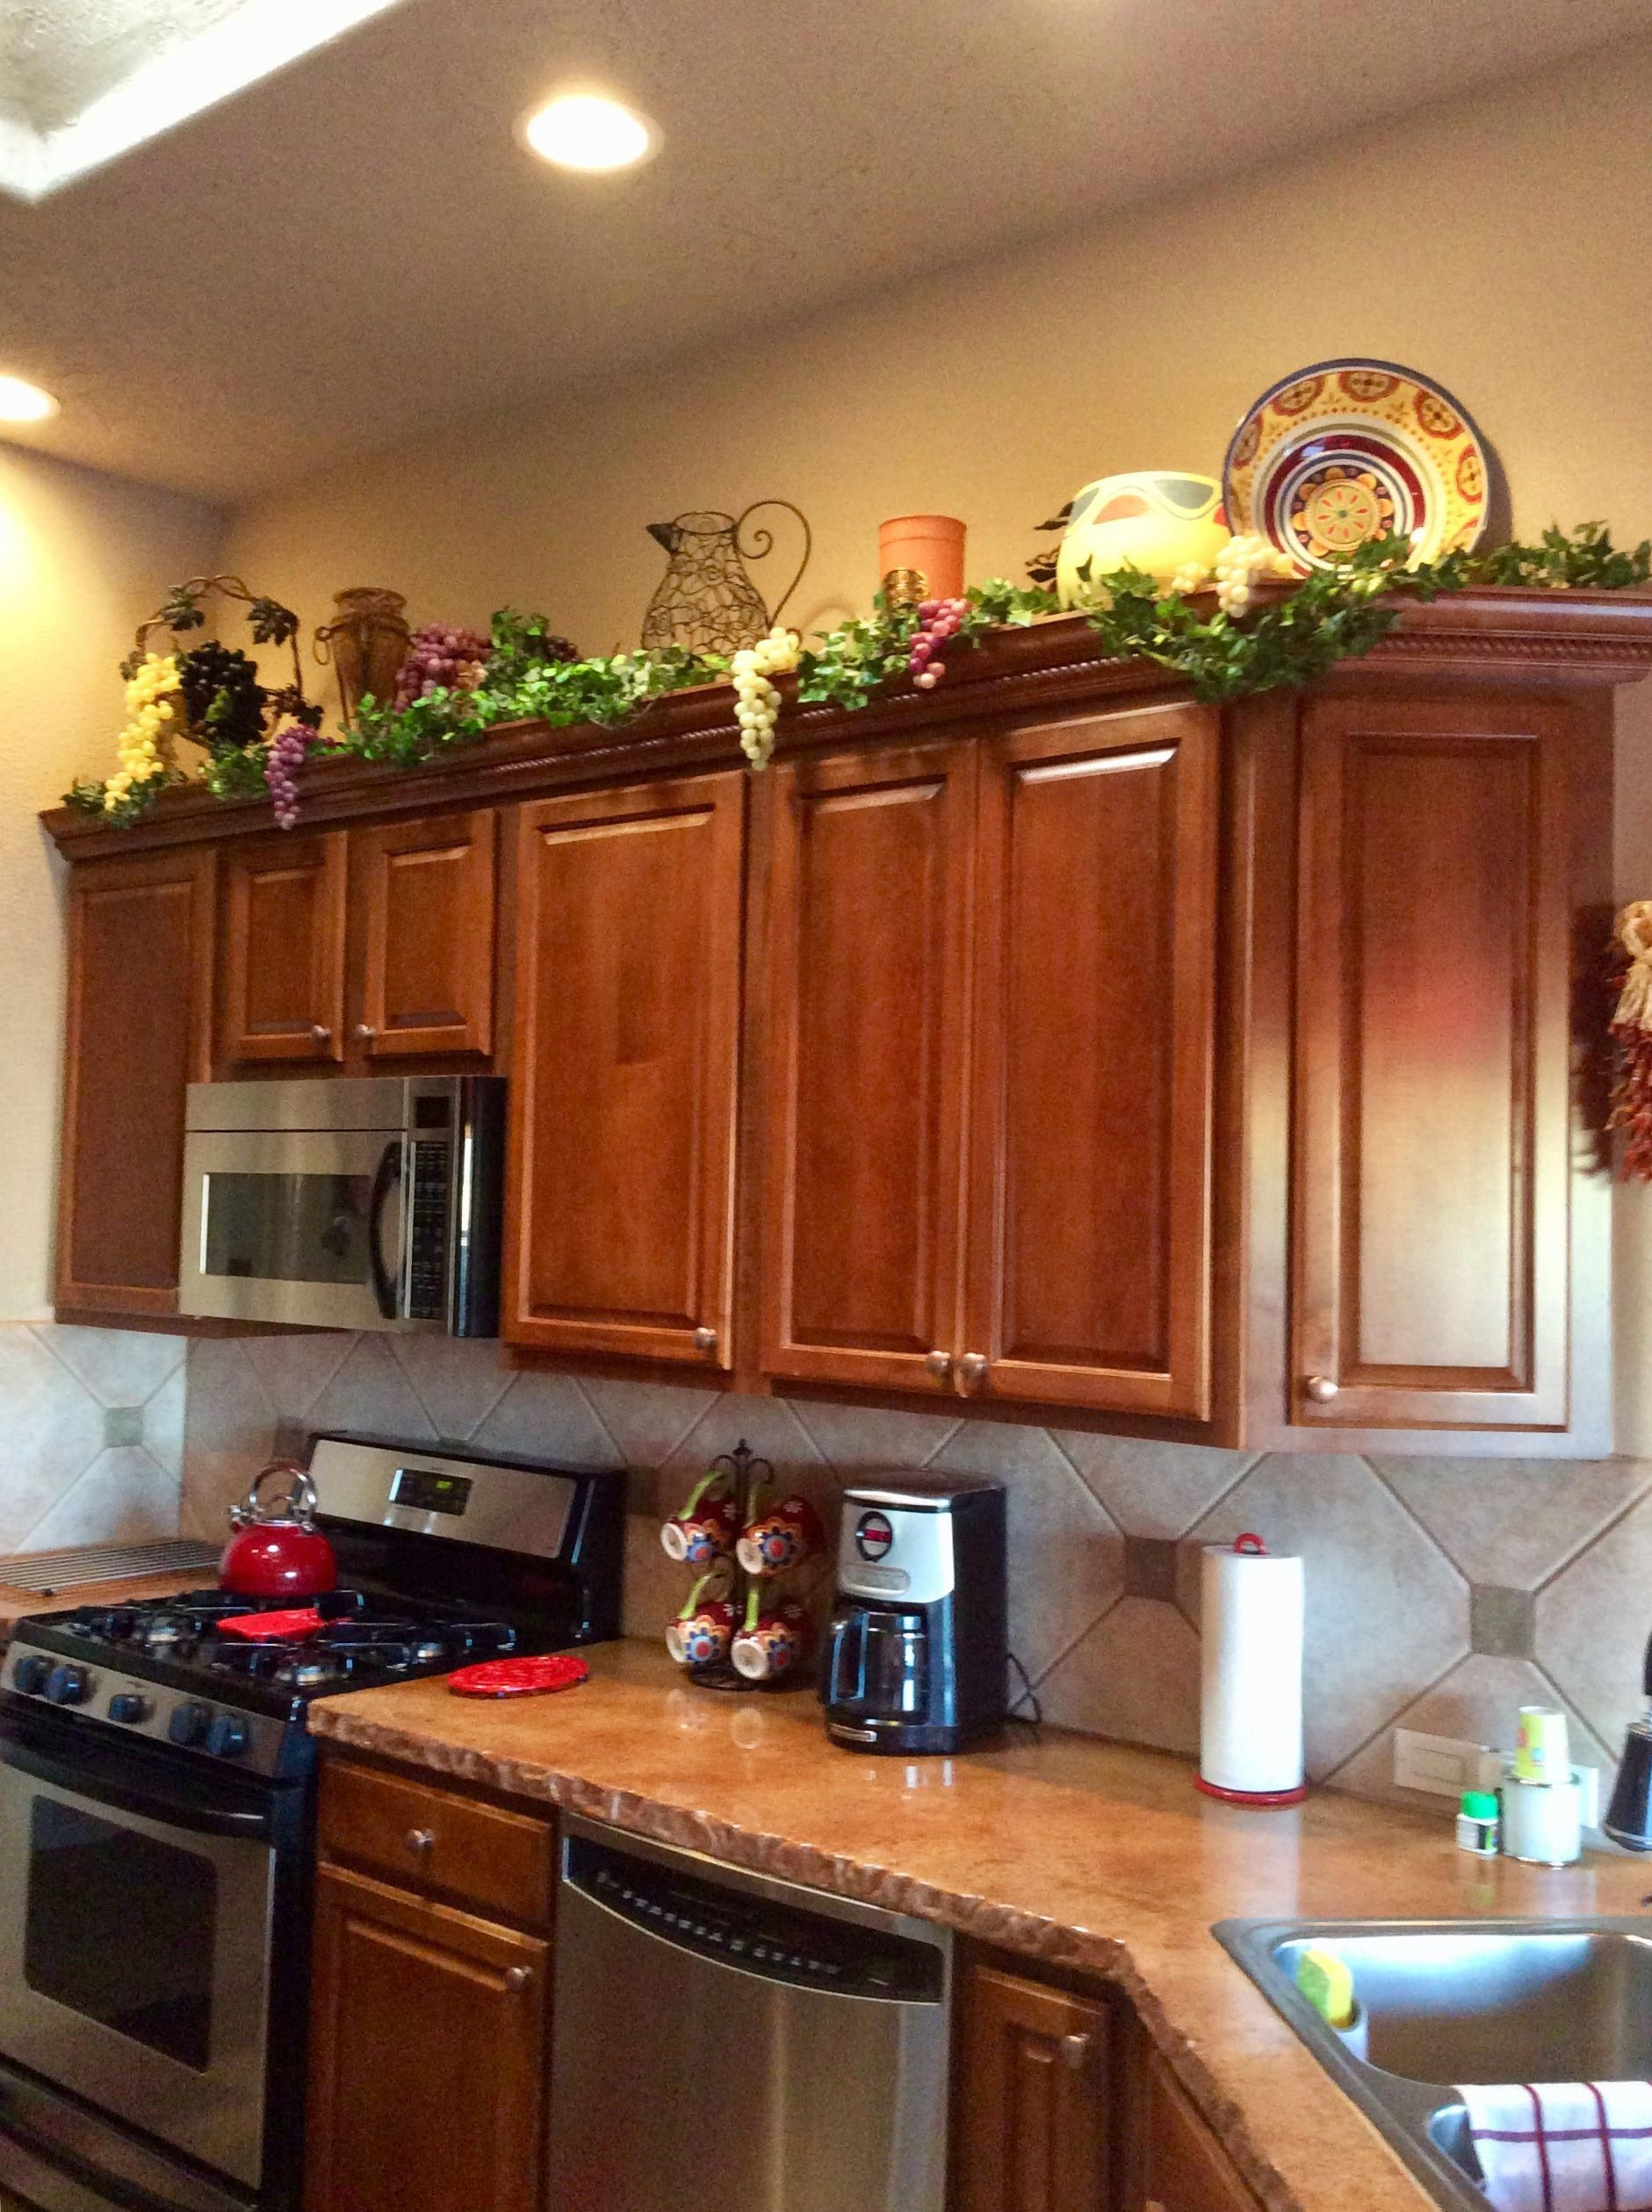 Decorating Above The Kitchen Cabinets Tuscandecor Decorating Above Kitchen Cabinets Tuscan Decorating Kitchen Above Kitchen Cabinets